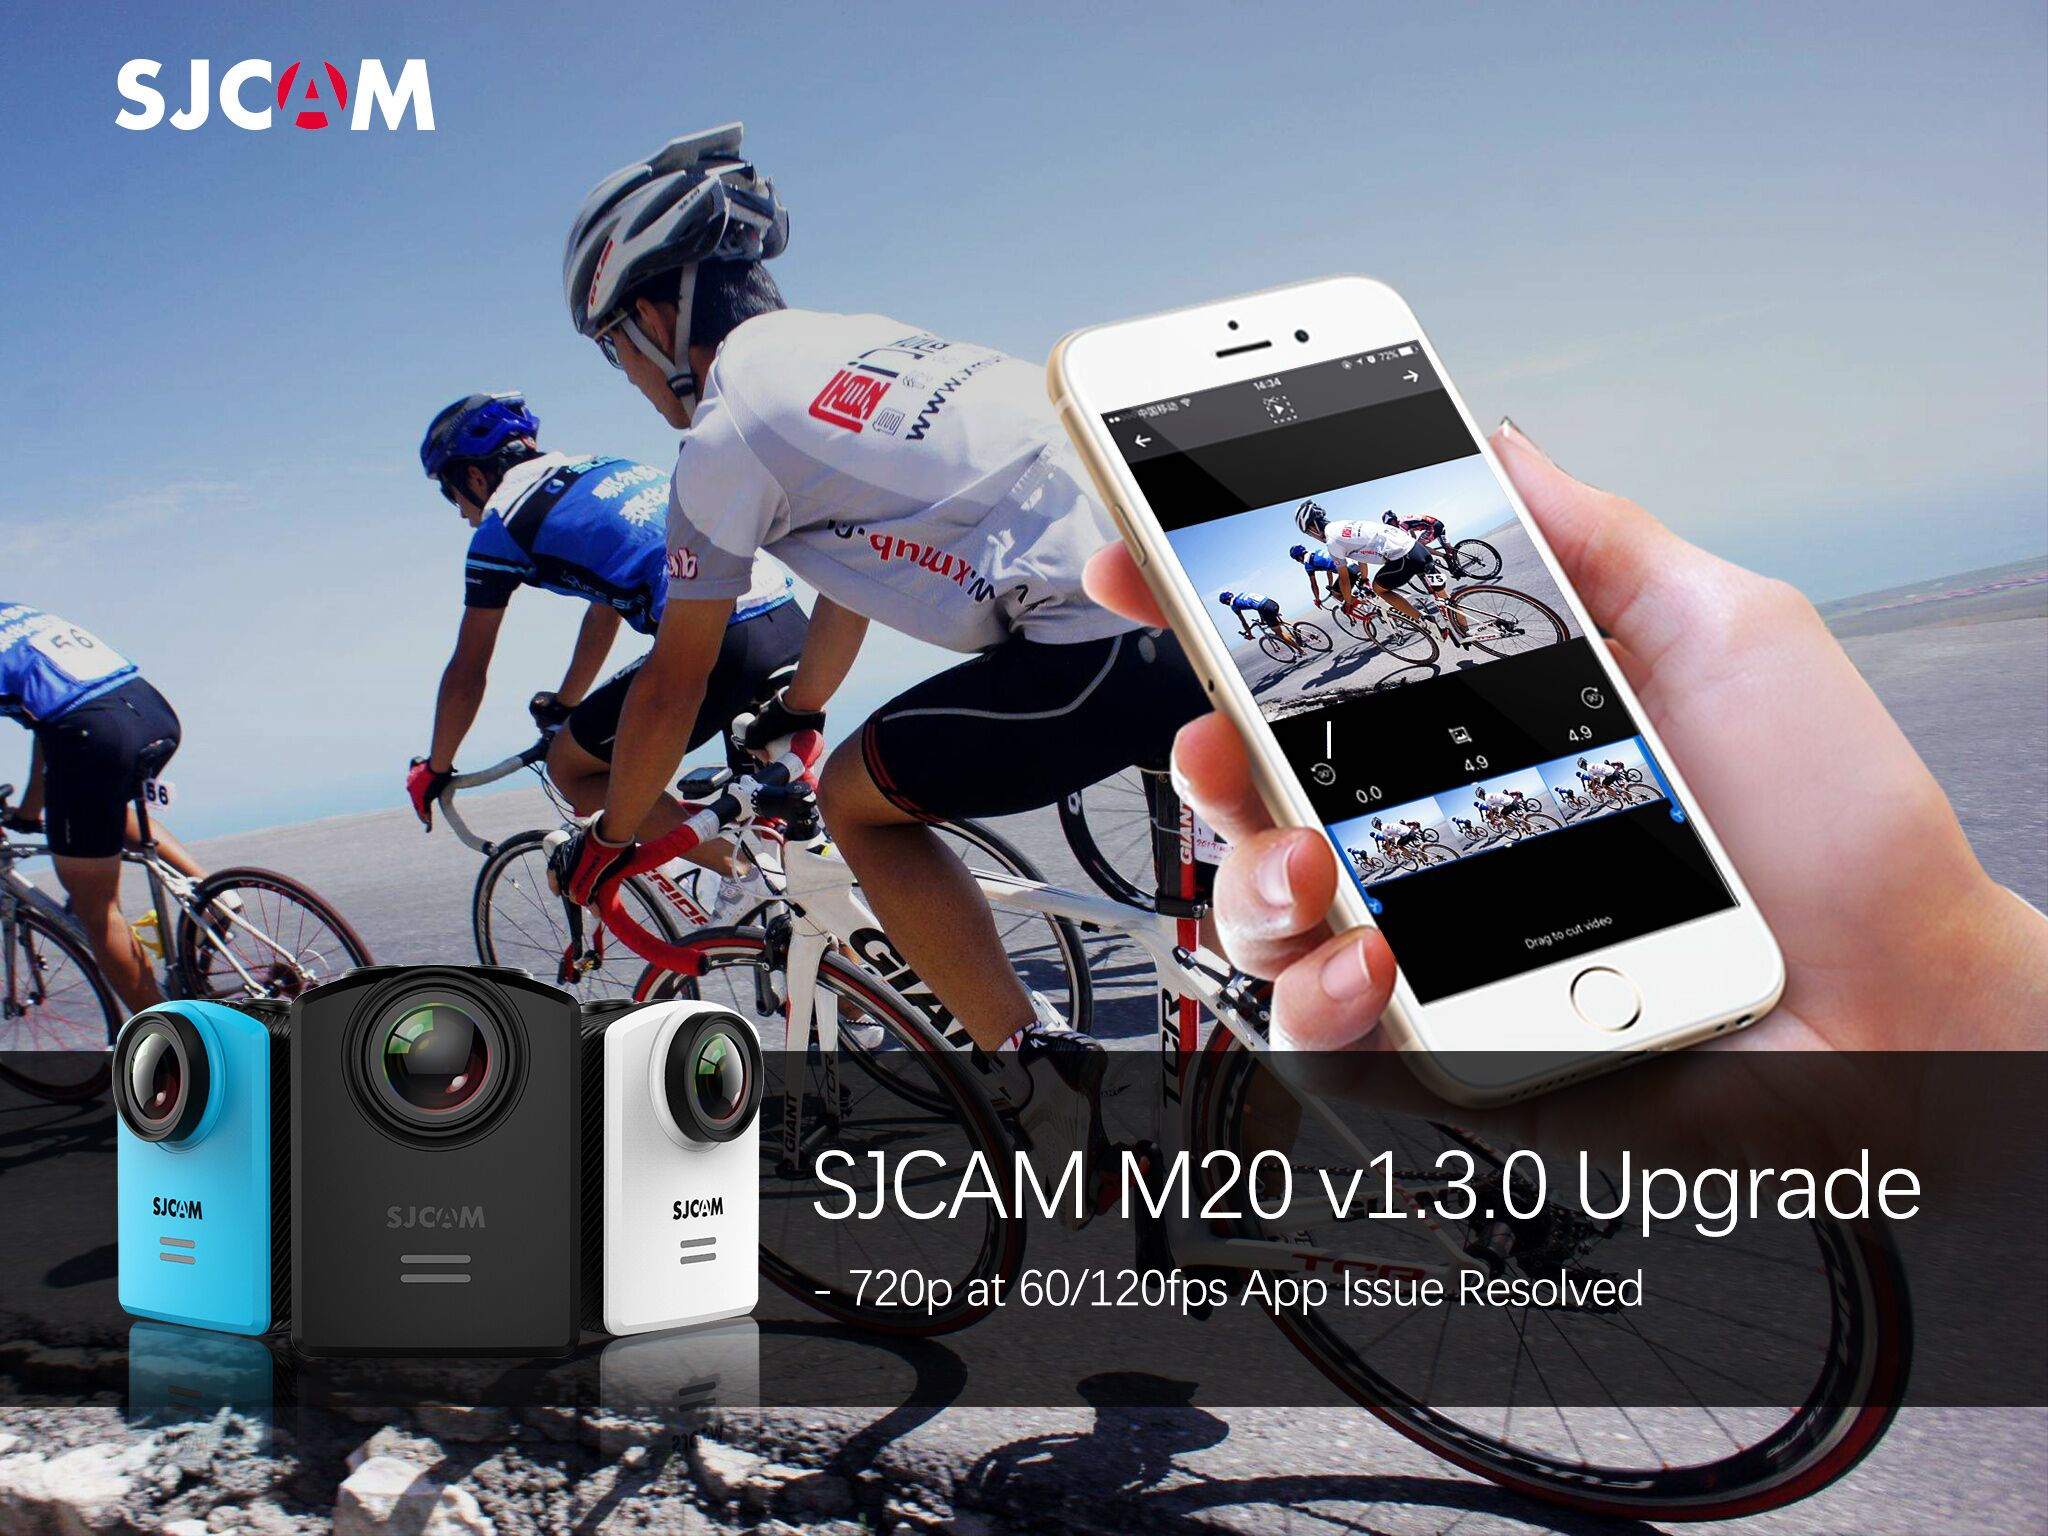 SJCAM M20 V1.3.0 Firmware Upgrade – April 13 Edition